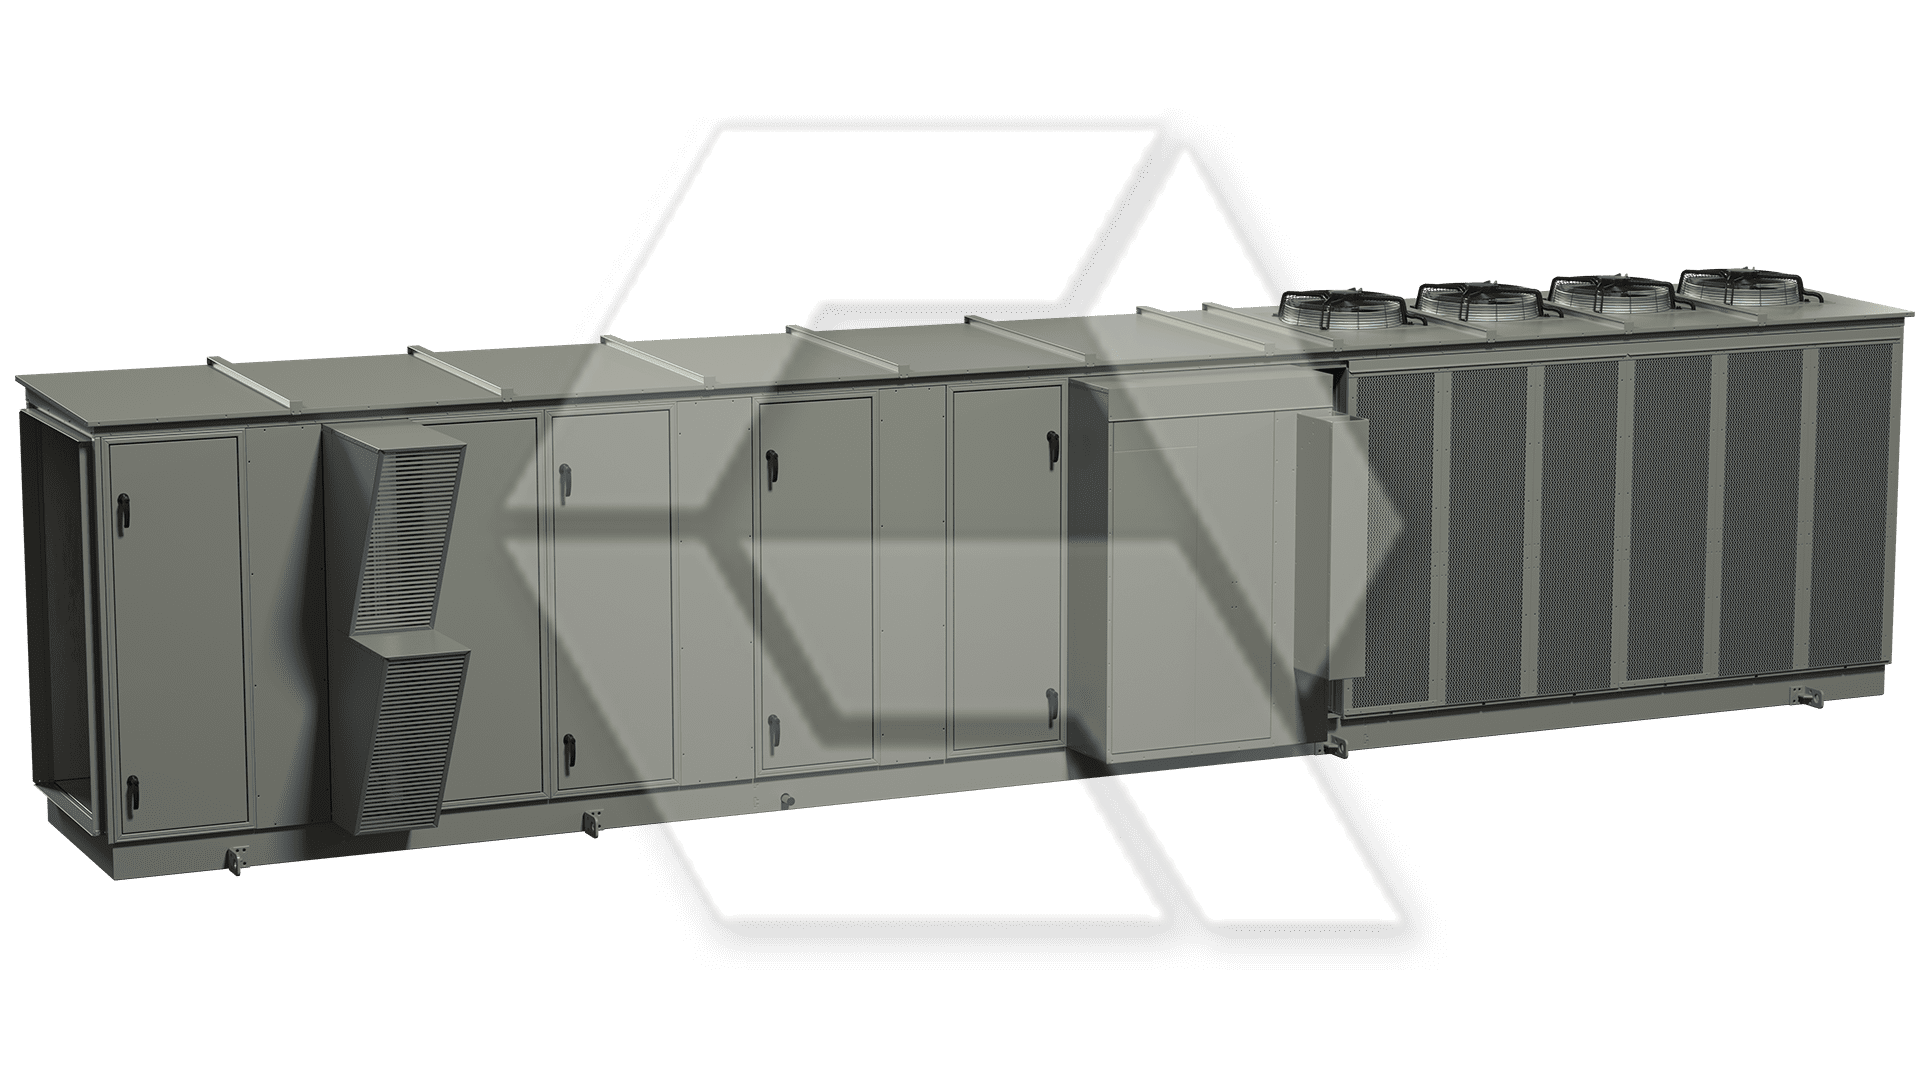 Innovent AHU-7765924 Closed View